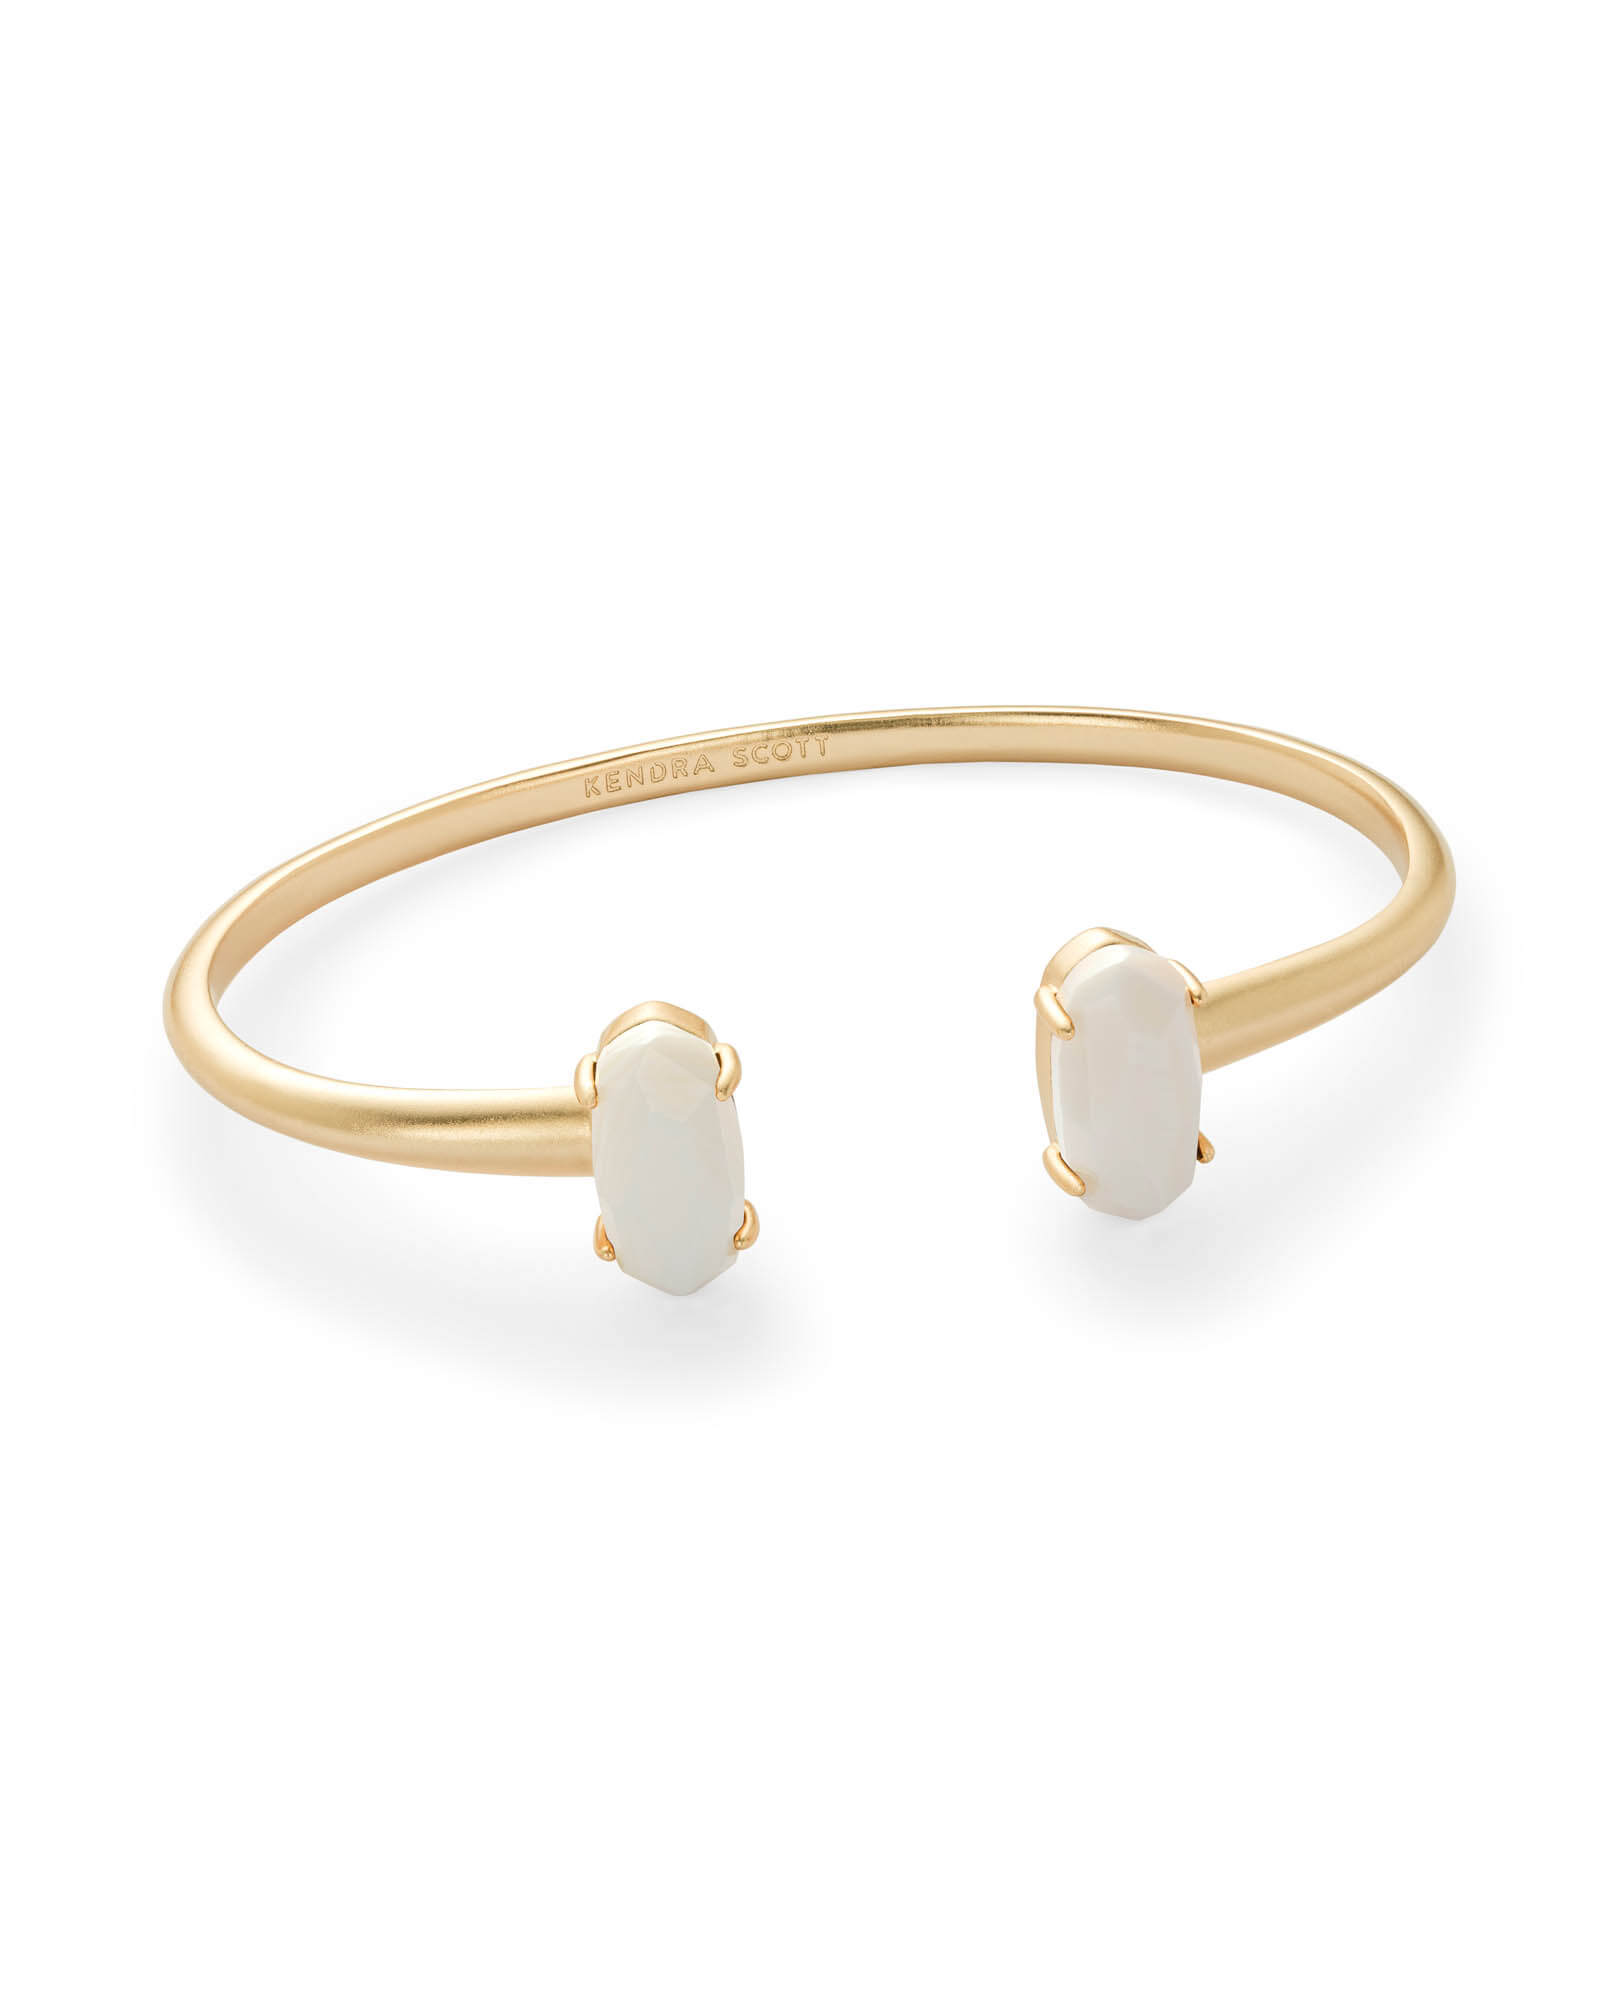 Edie Gold Cuff Bracelet in White Pearl